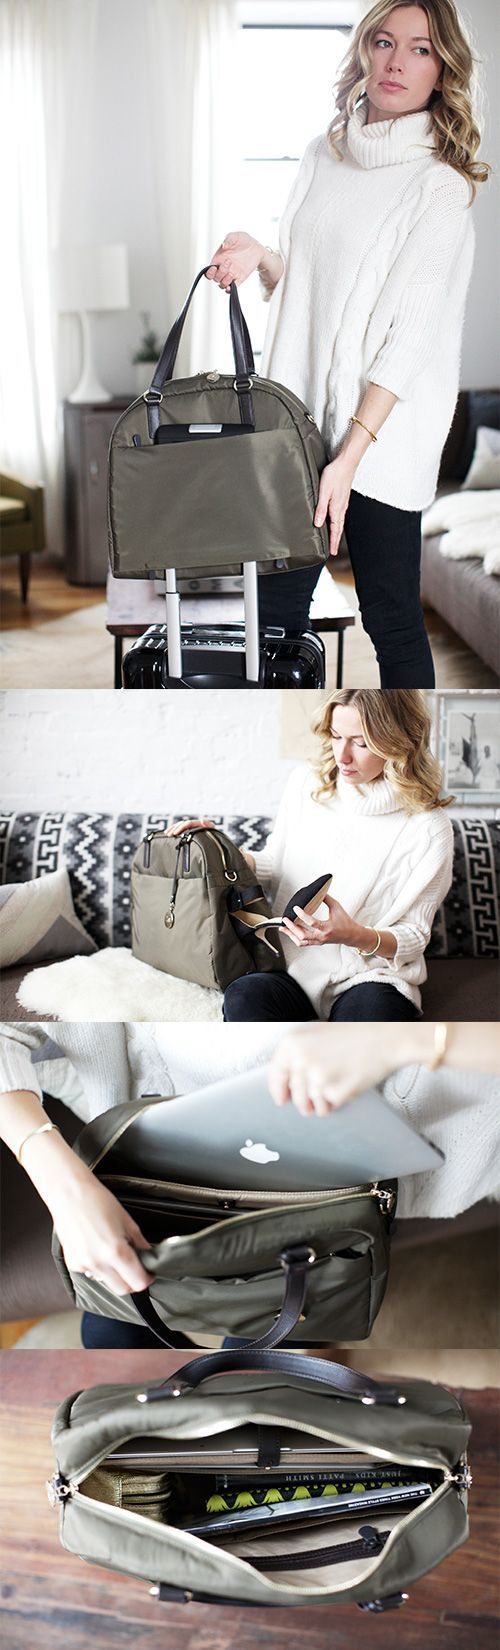 """The OMG"" - lightweight travel bag, tech friendly laptop tote, and stylish gym bag. Designed by Lo & Sons - loandsons.com. #loandsons"